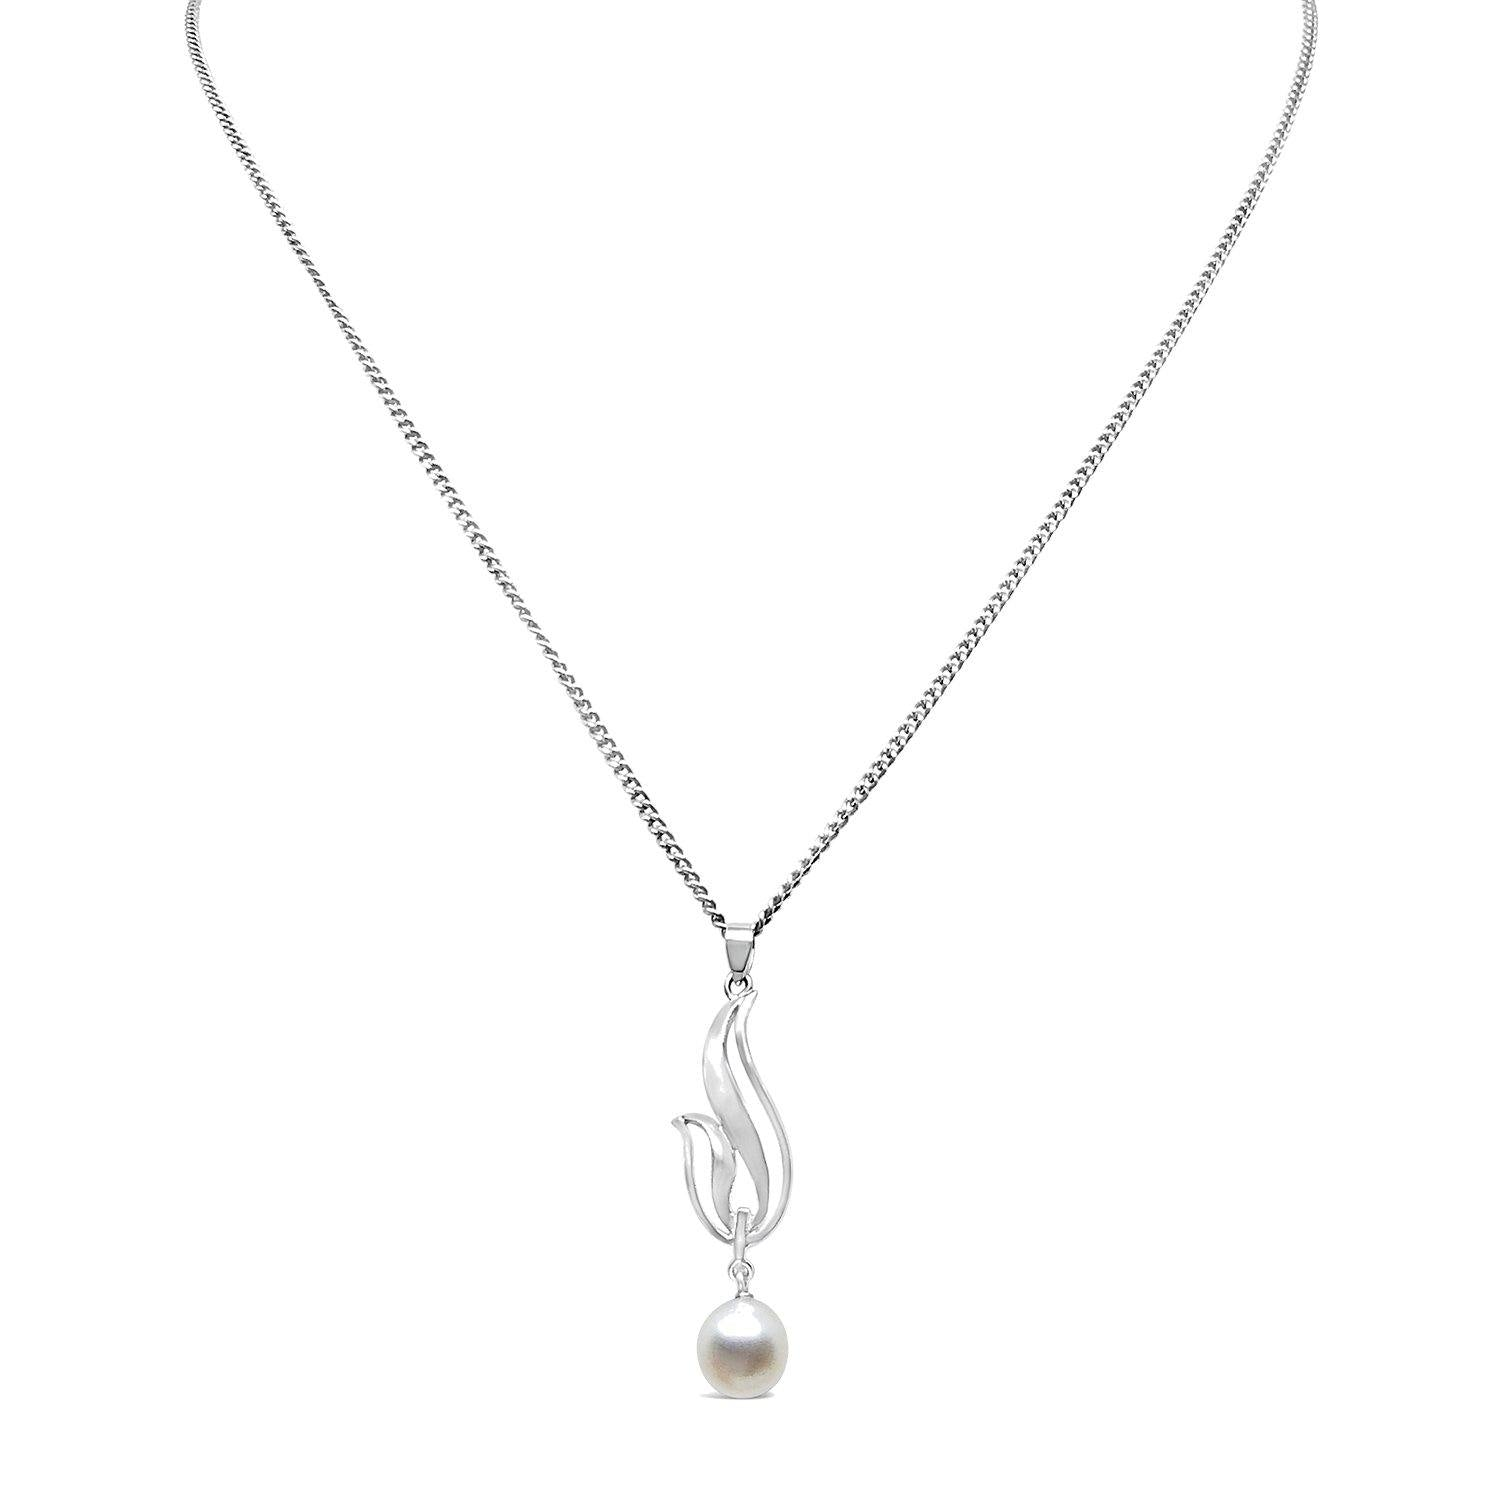 Swirl Mikimoto Saltwater Akoya Cultured Pearl Necklace Designer- Sterling Silver